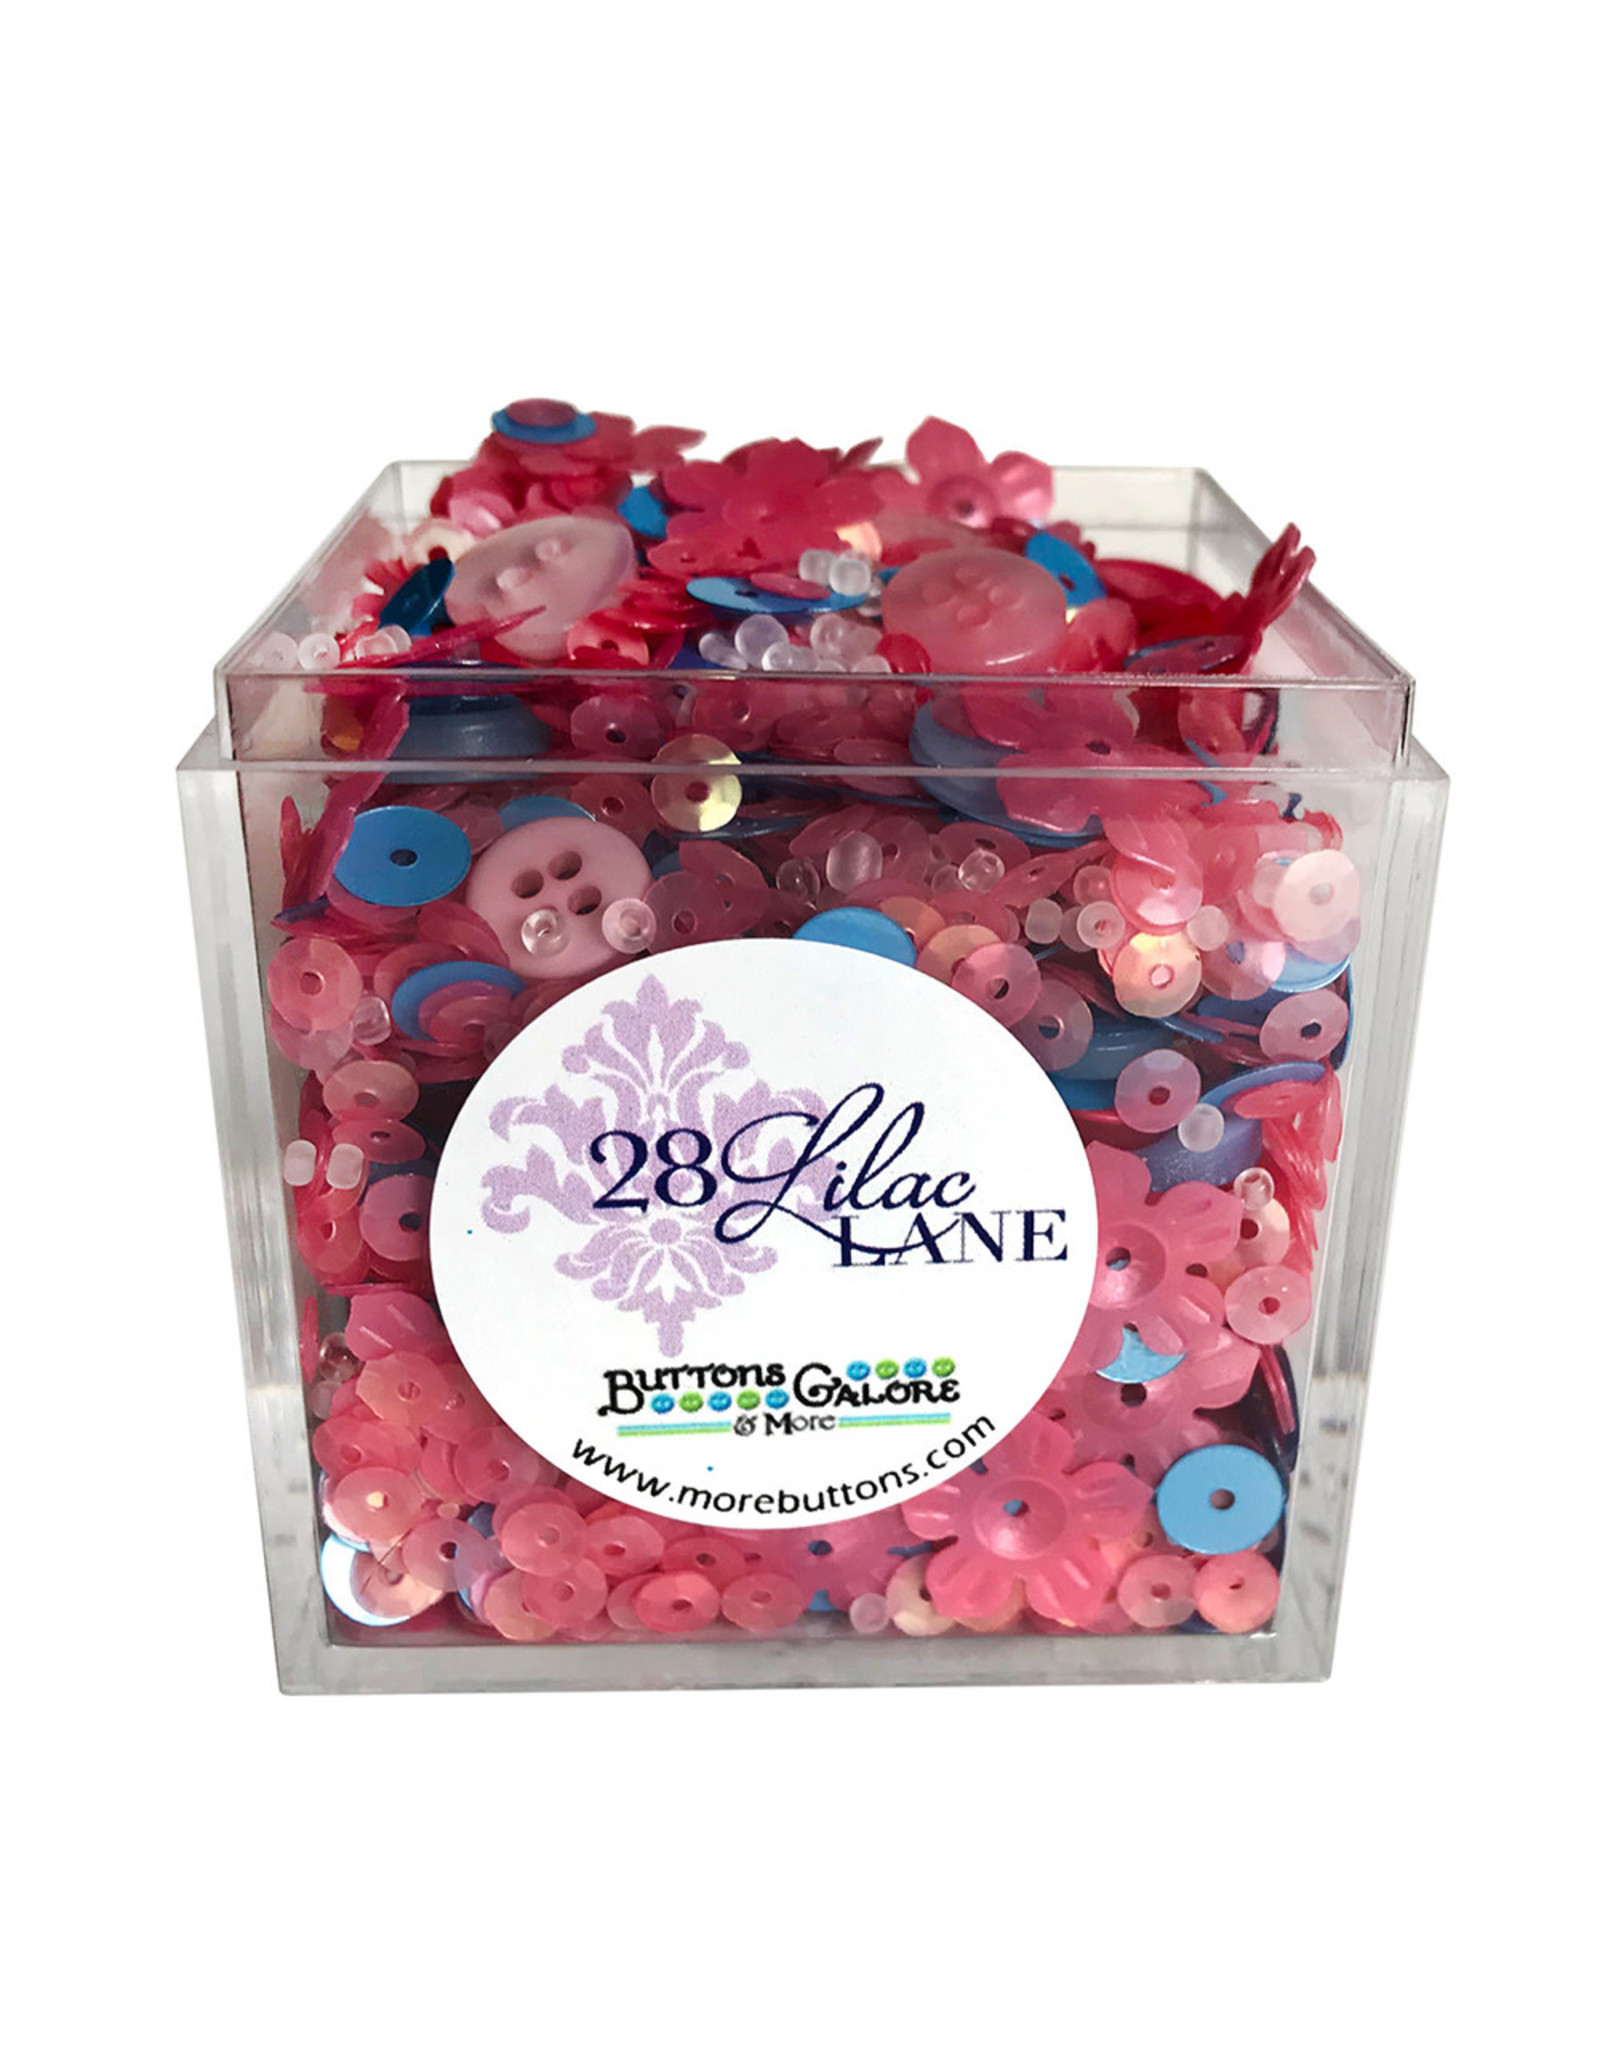 Buttons Galore & More 28 Lilac Lane - Shaker Mixes - Cherries In Bloom